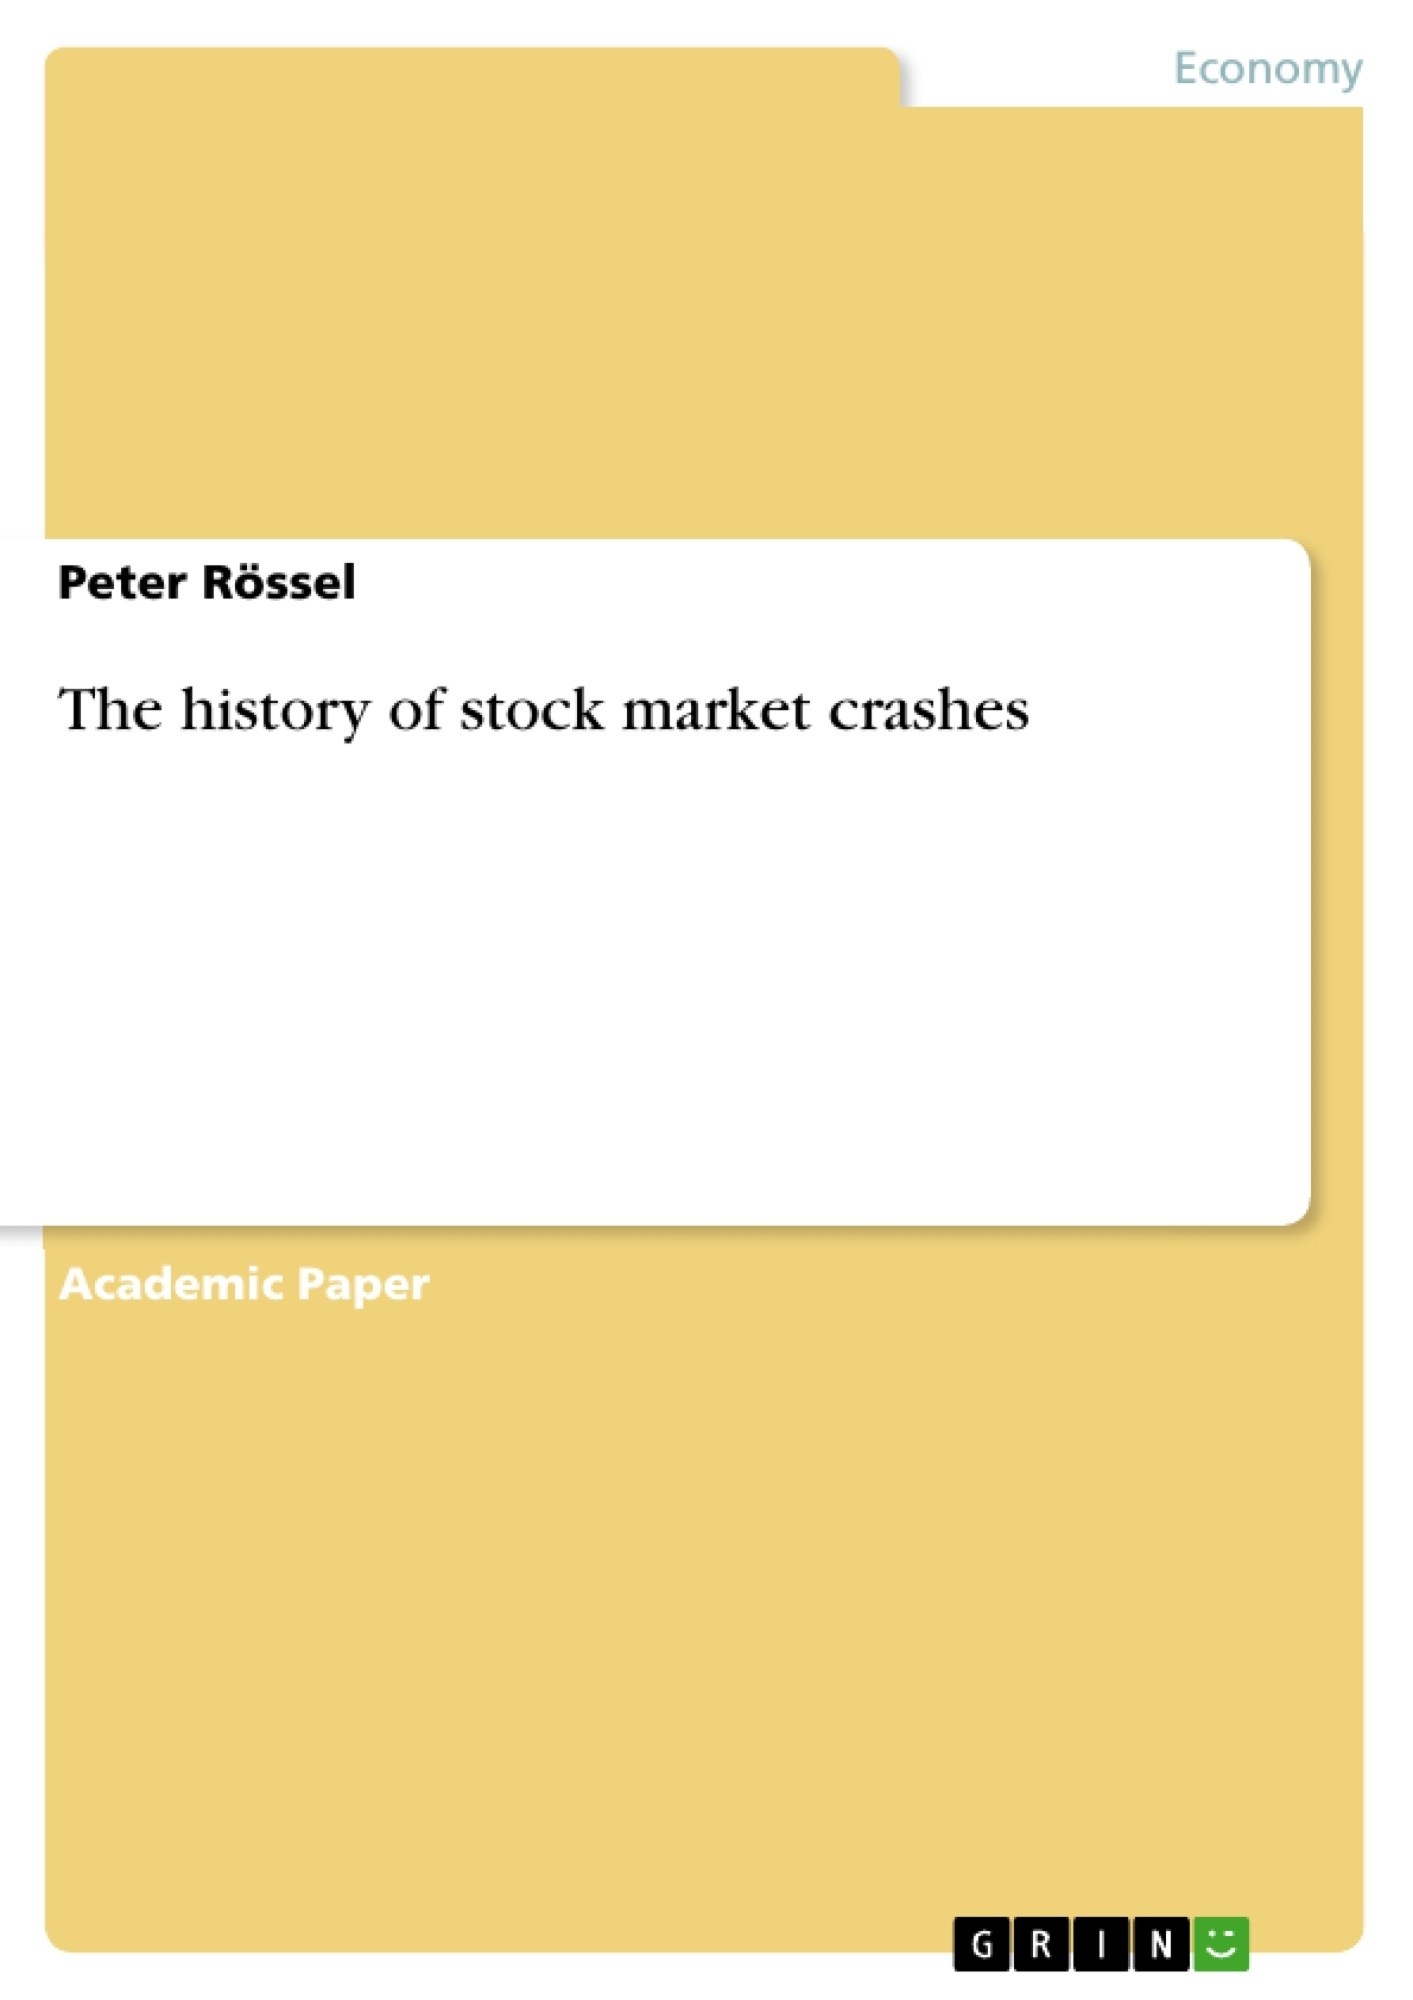 Title: The history of stock market crashes